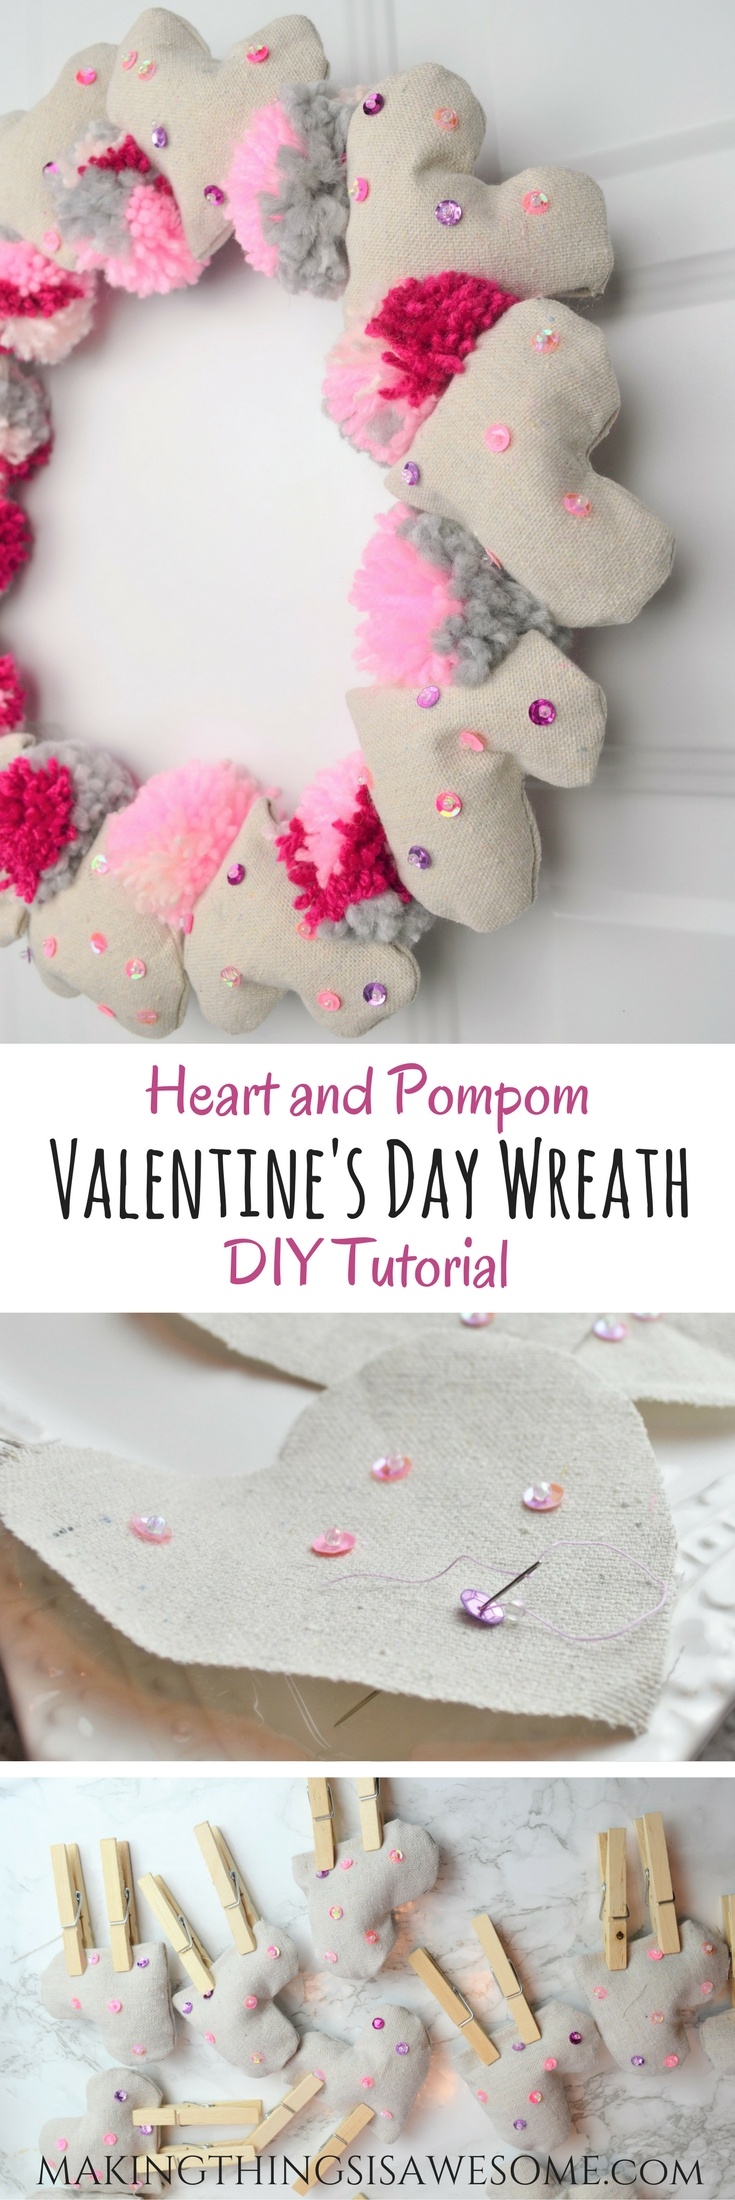 Valentine S Day Wreath Heart And Pompom Wreath For Your Front Door